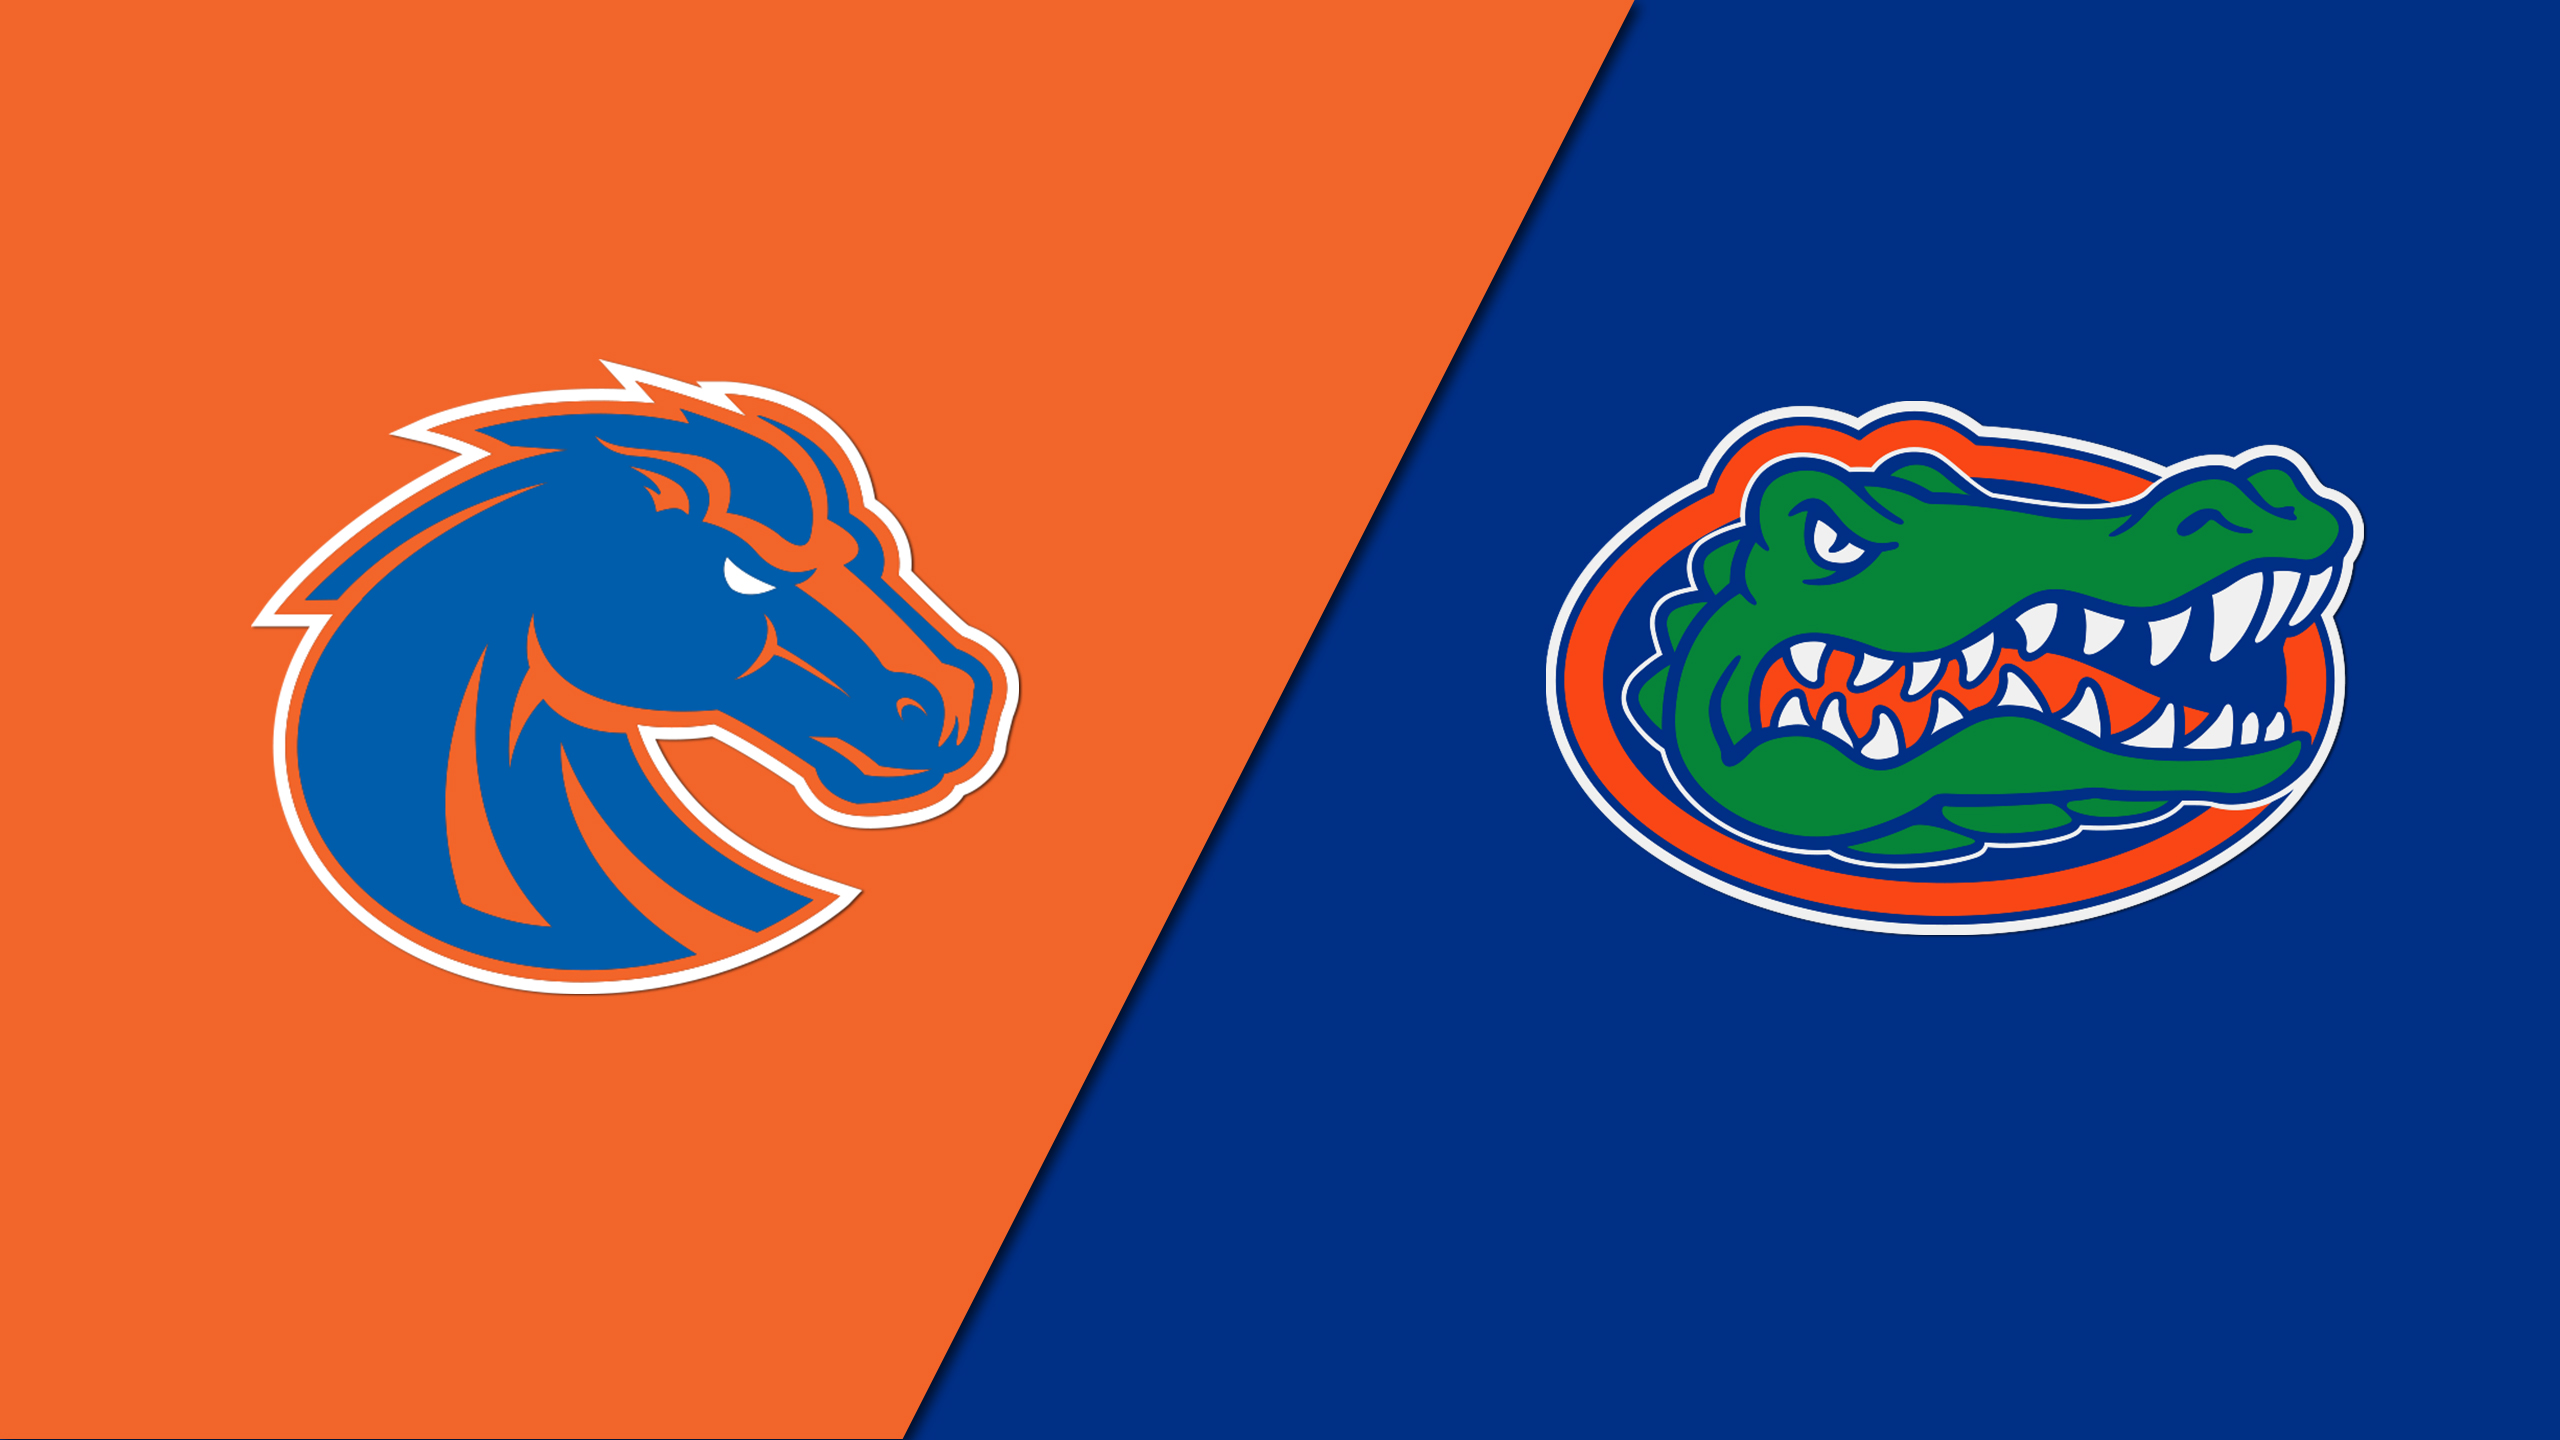 Boise State vs. Florida (Site 3 / Game 6)